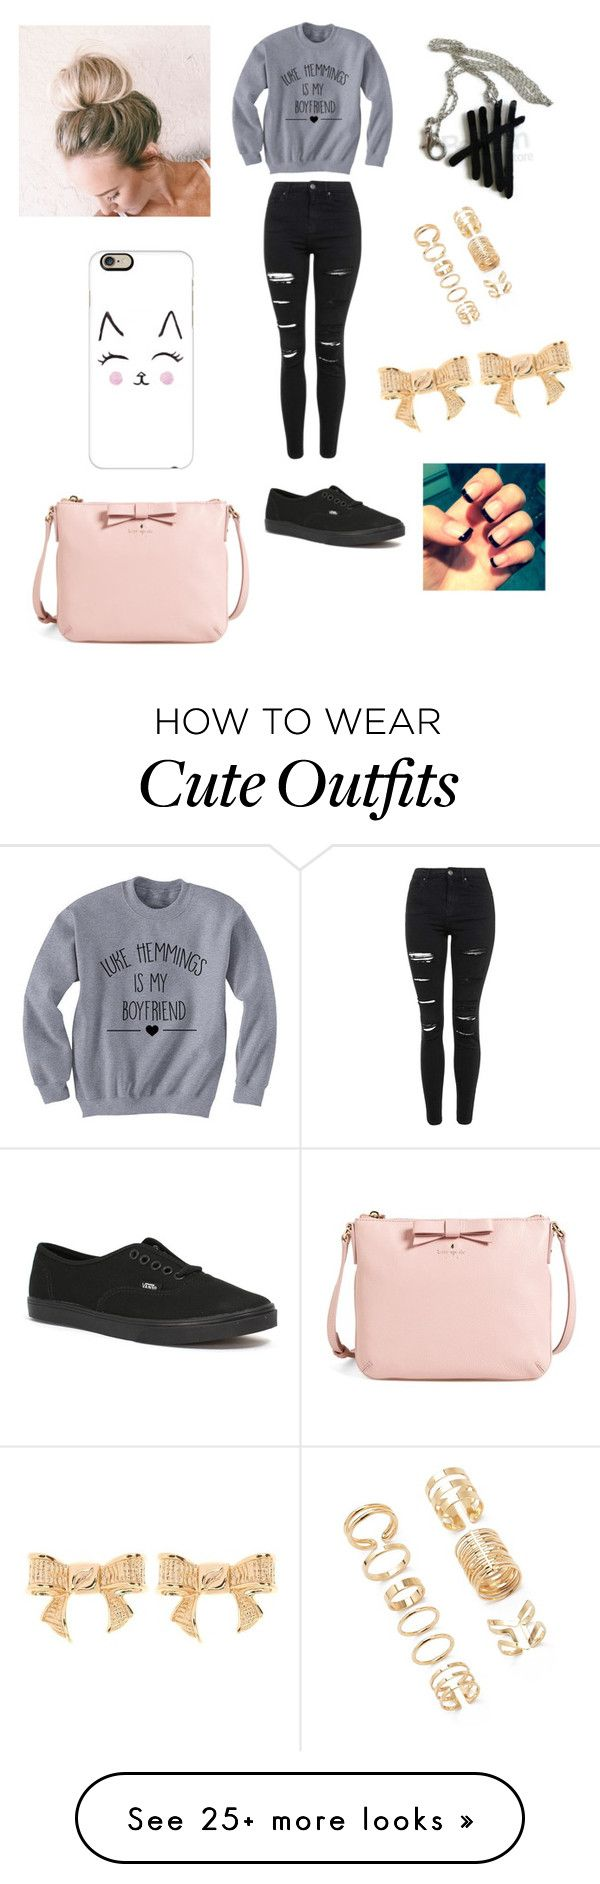 """Luke Hemmings from 5sos inspired outfit5️⃣"" by chloepile1 on Polyvore featuring Topshop, Vans, Forever 21, Casetify, Kate Spade, Ted Baker, women's clothing, women's fashion, women and female"